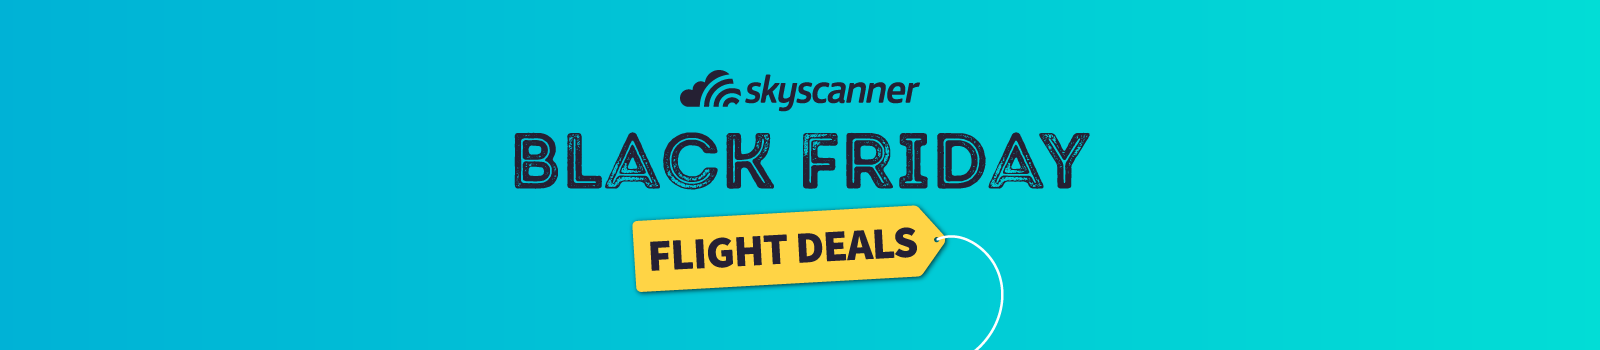 Find Black Friday Flight Deals By Clicking The Image Above